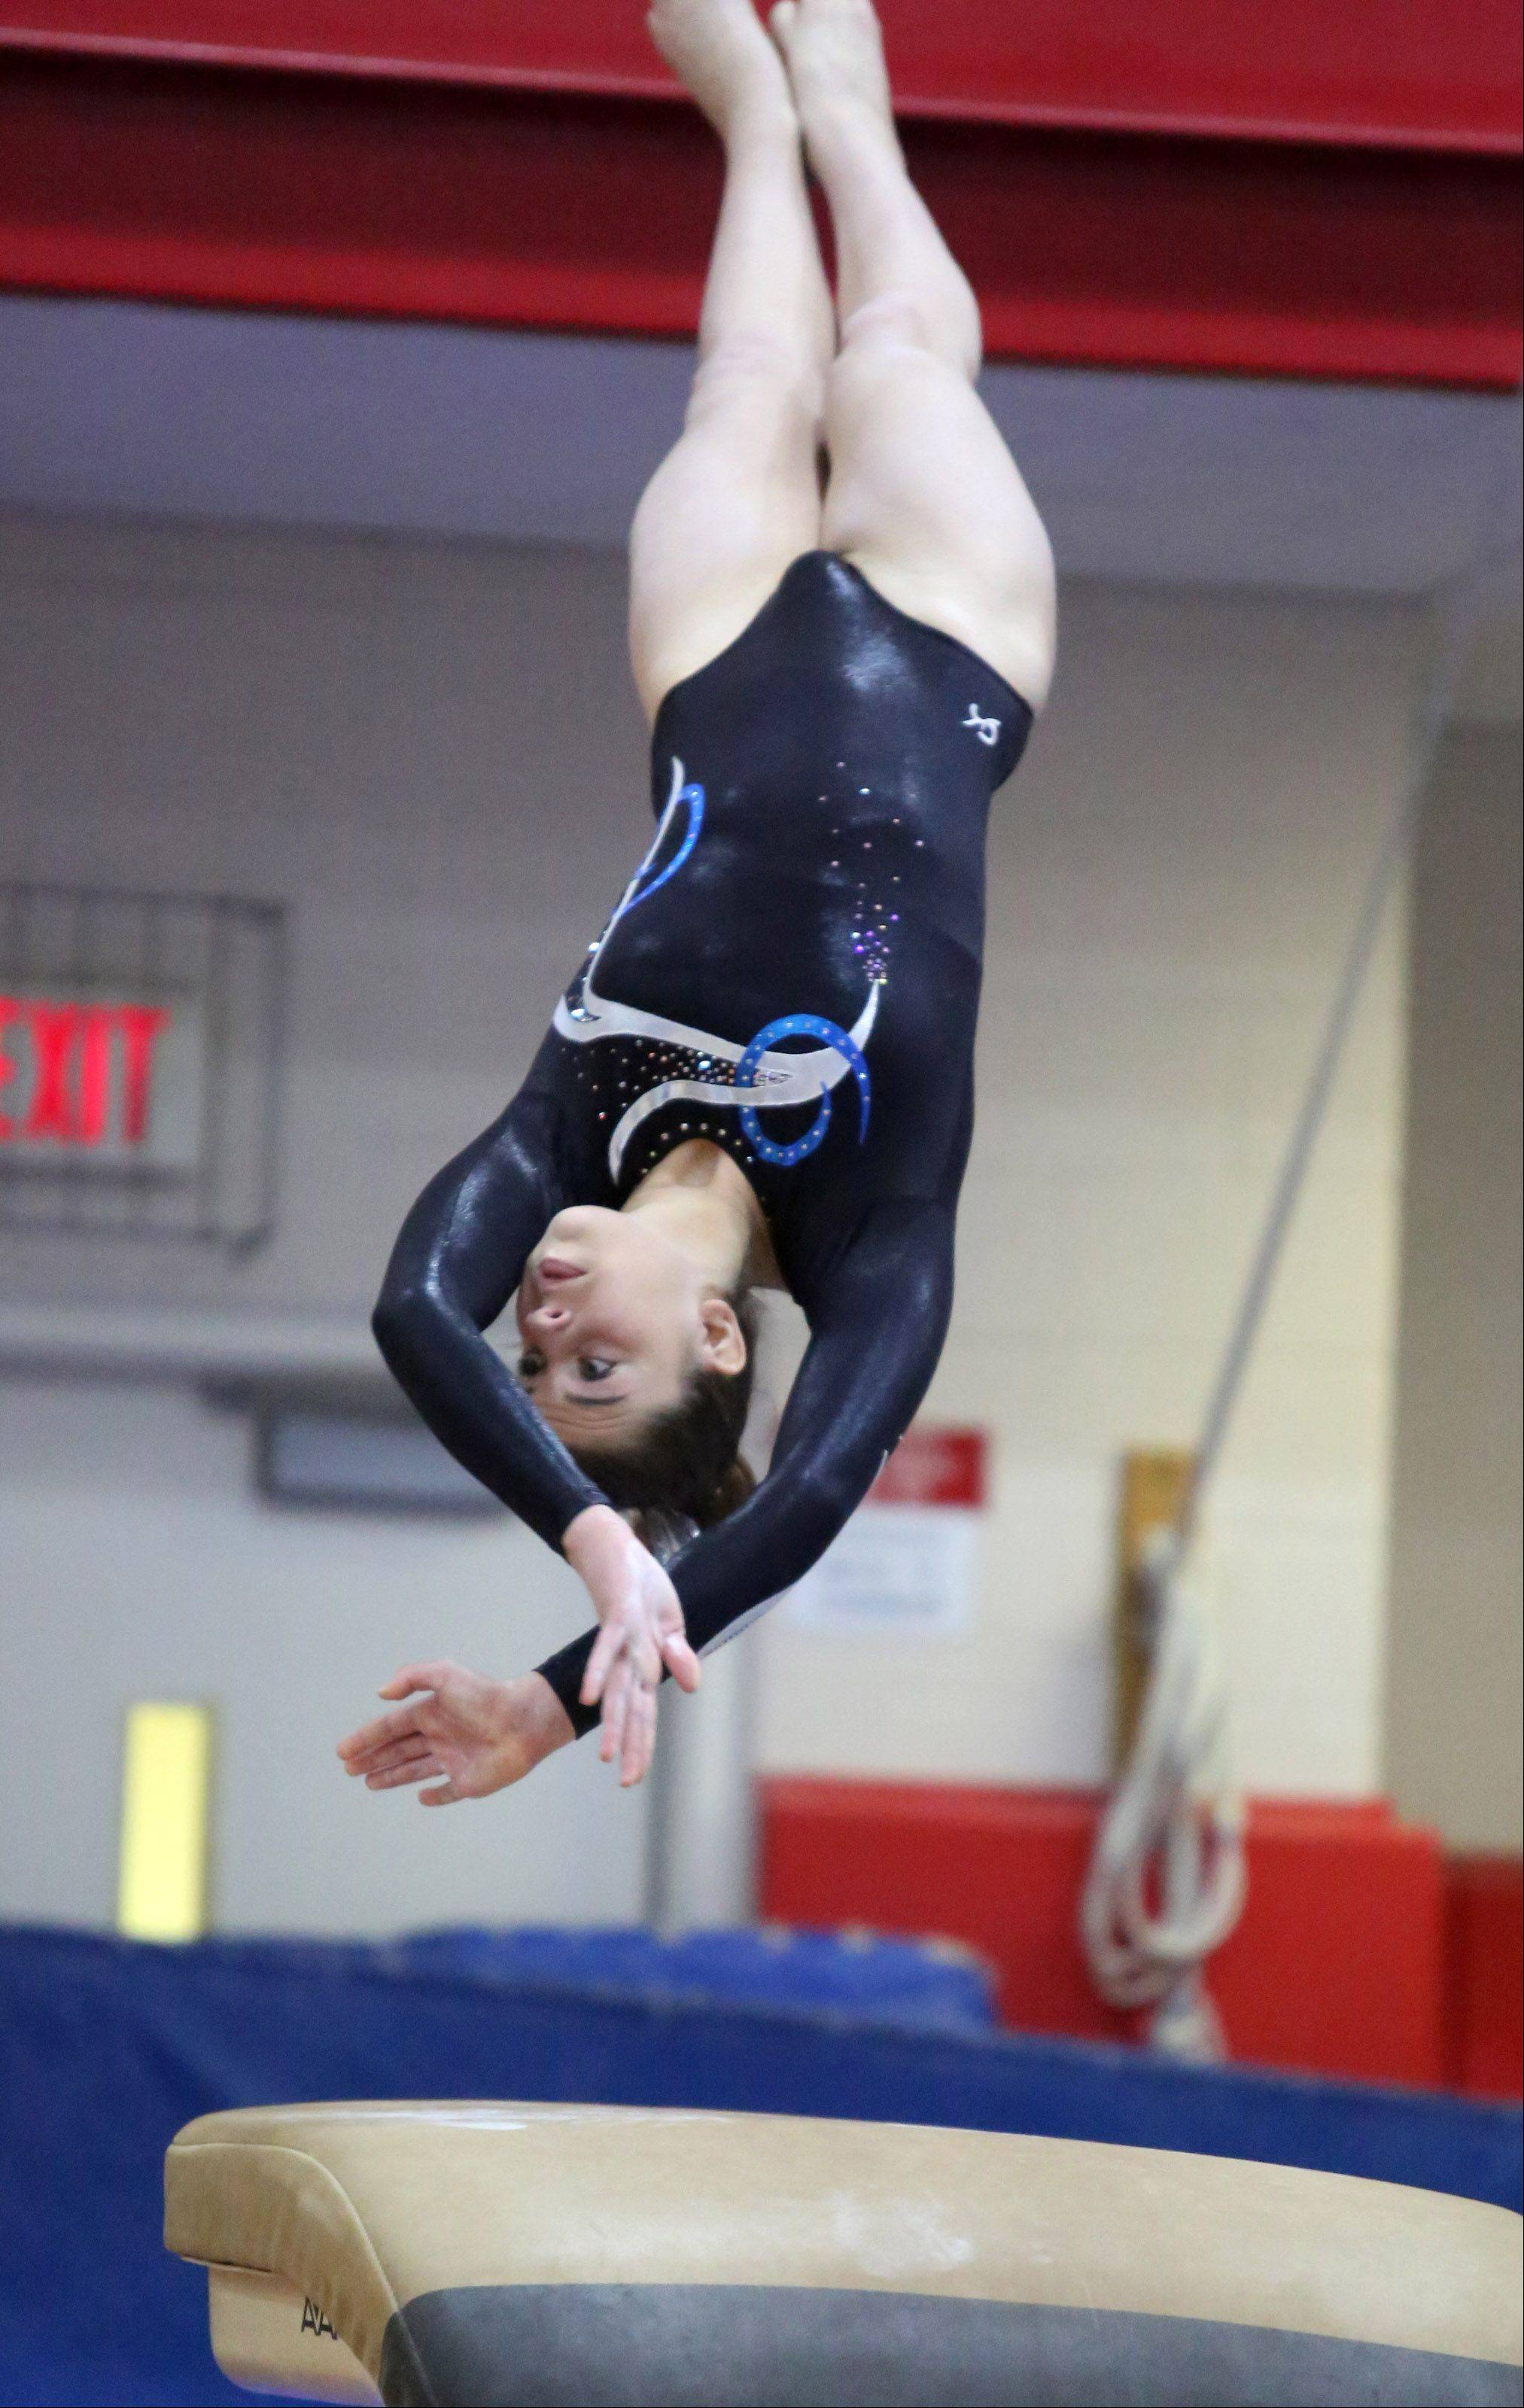 Prospect's Megan Schmit competes on the vault during the 25th Annual Palatine Invitational on Saturday.